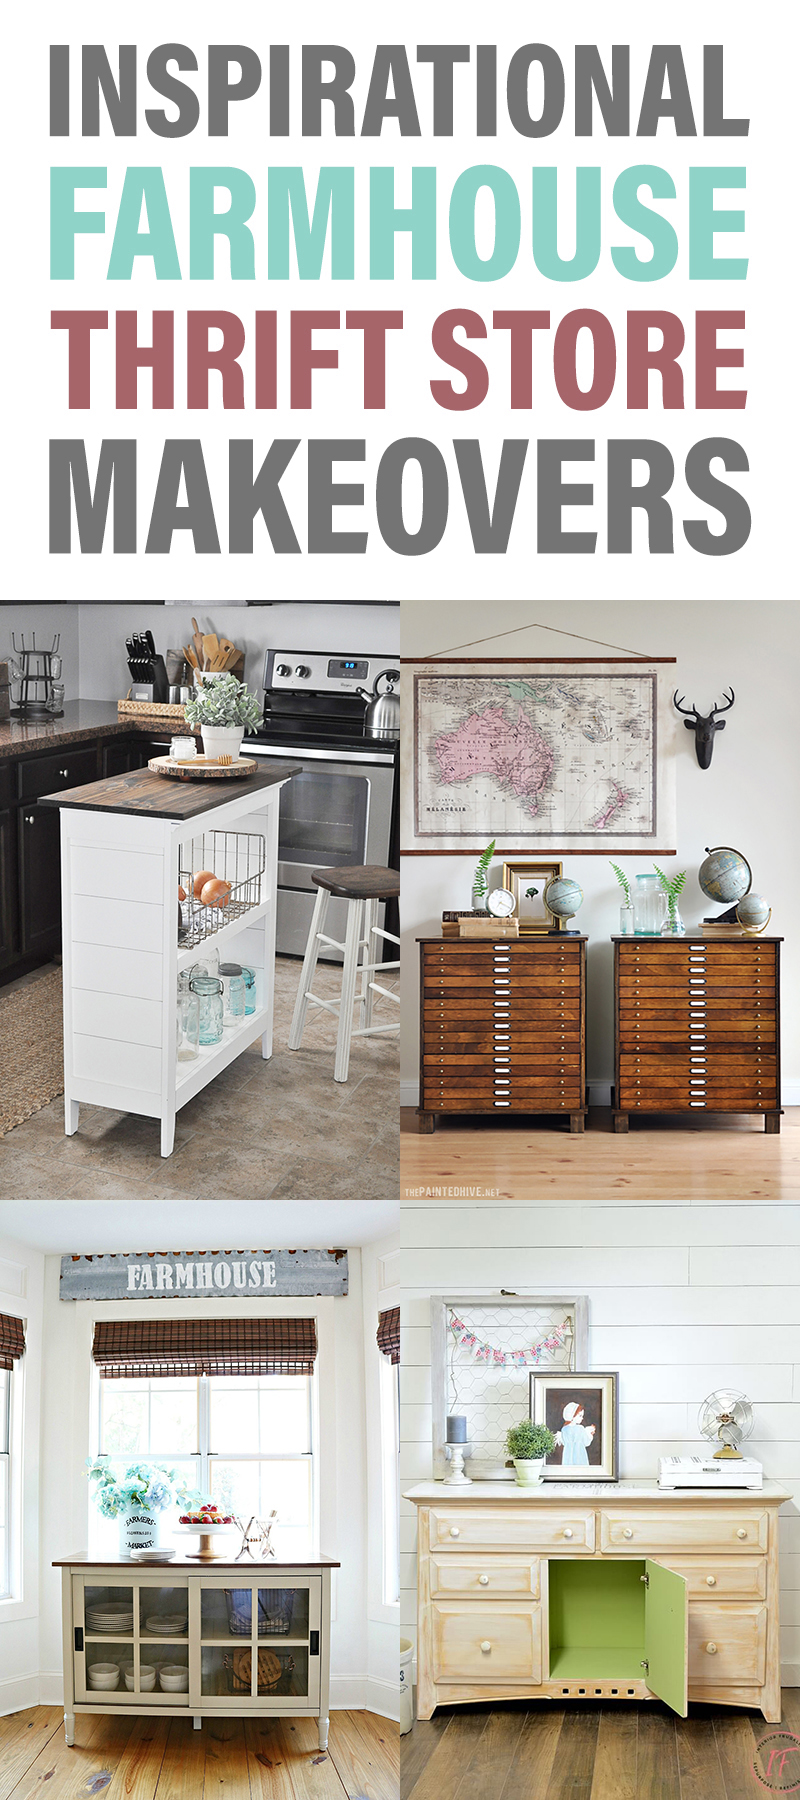 Inspirational Farmhouse Thrift Store Makeovers